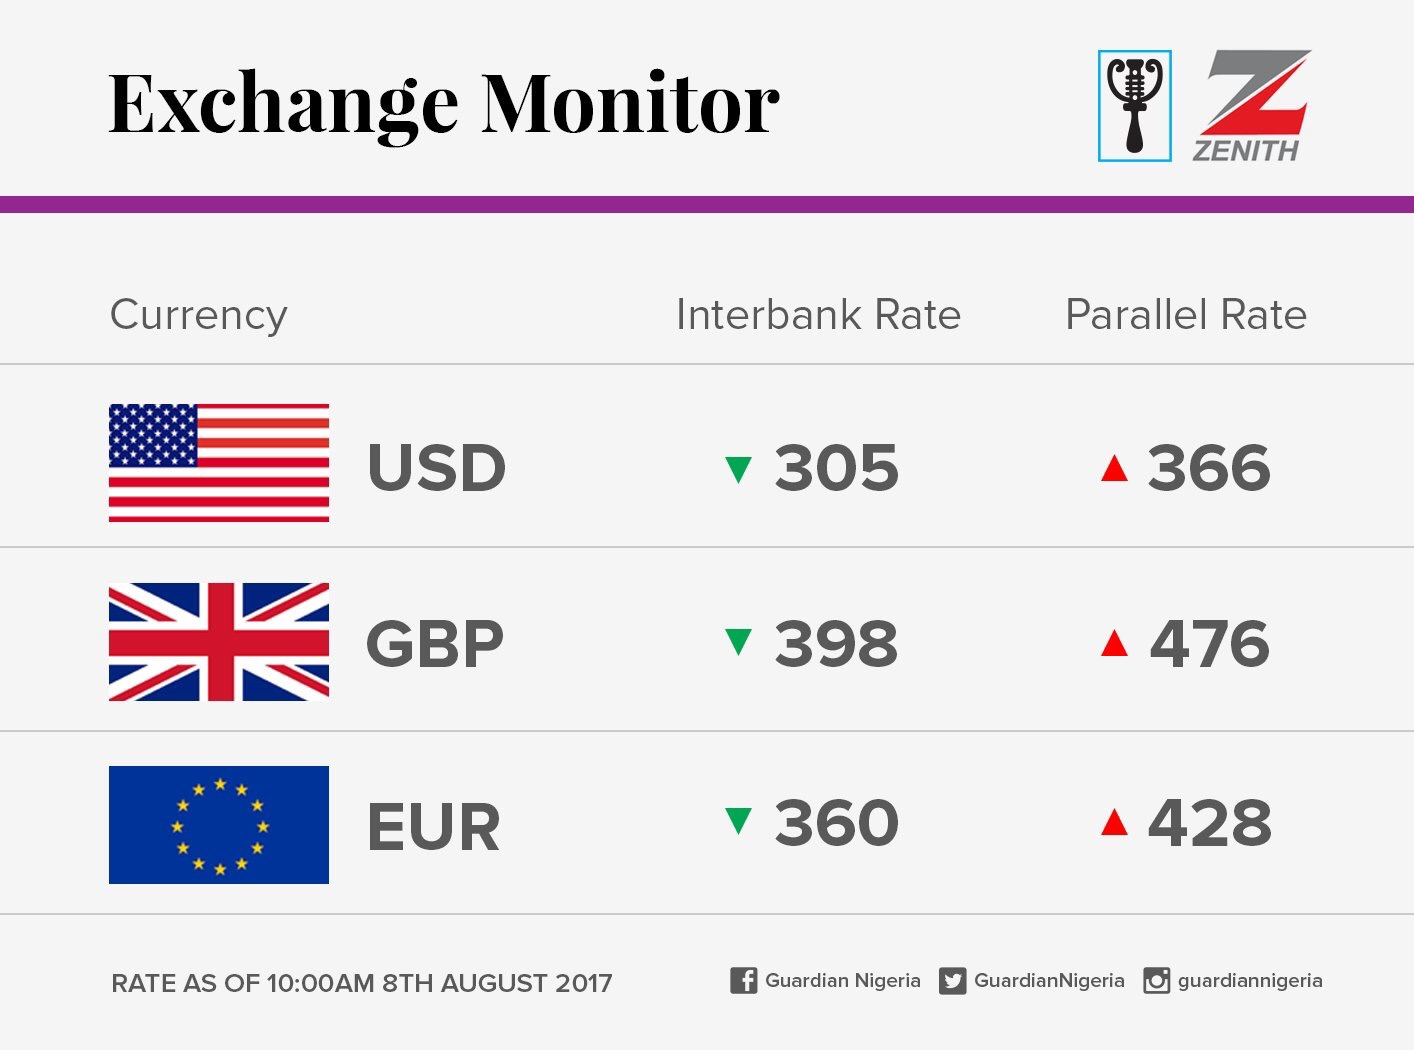 Exchange Rate For 8th August 2017